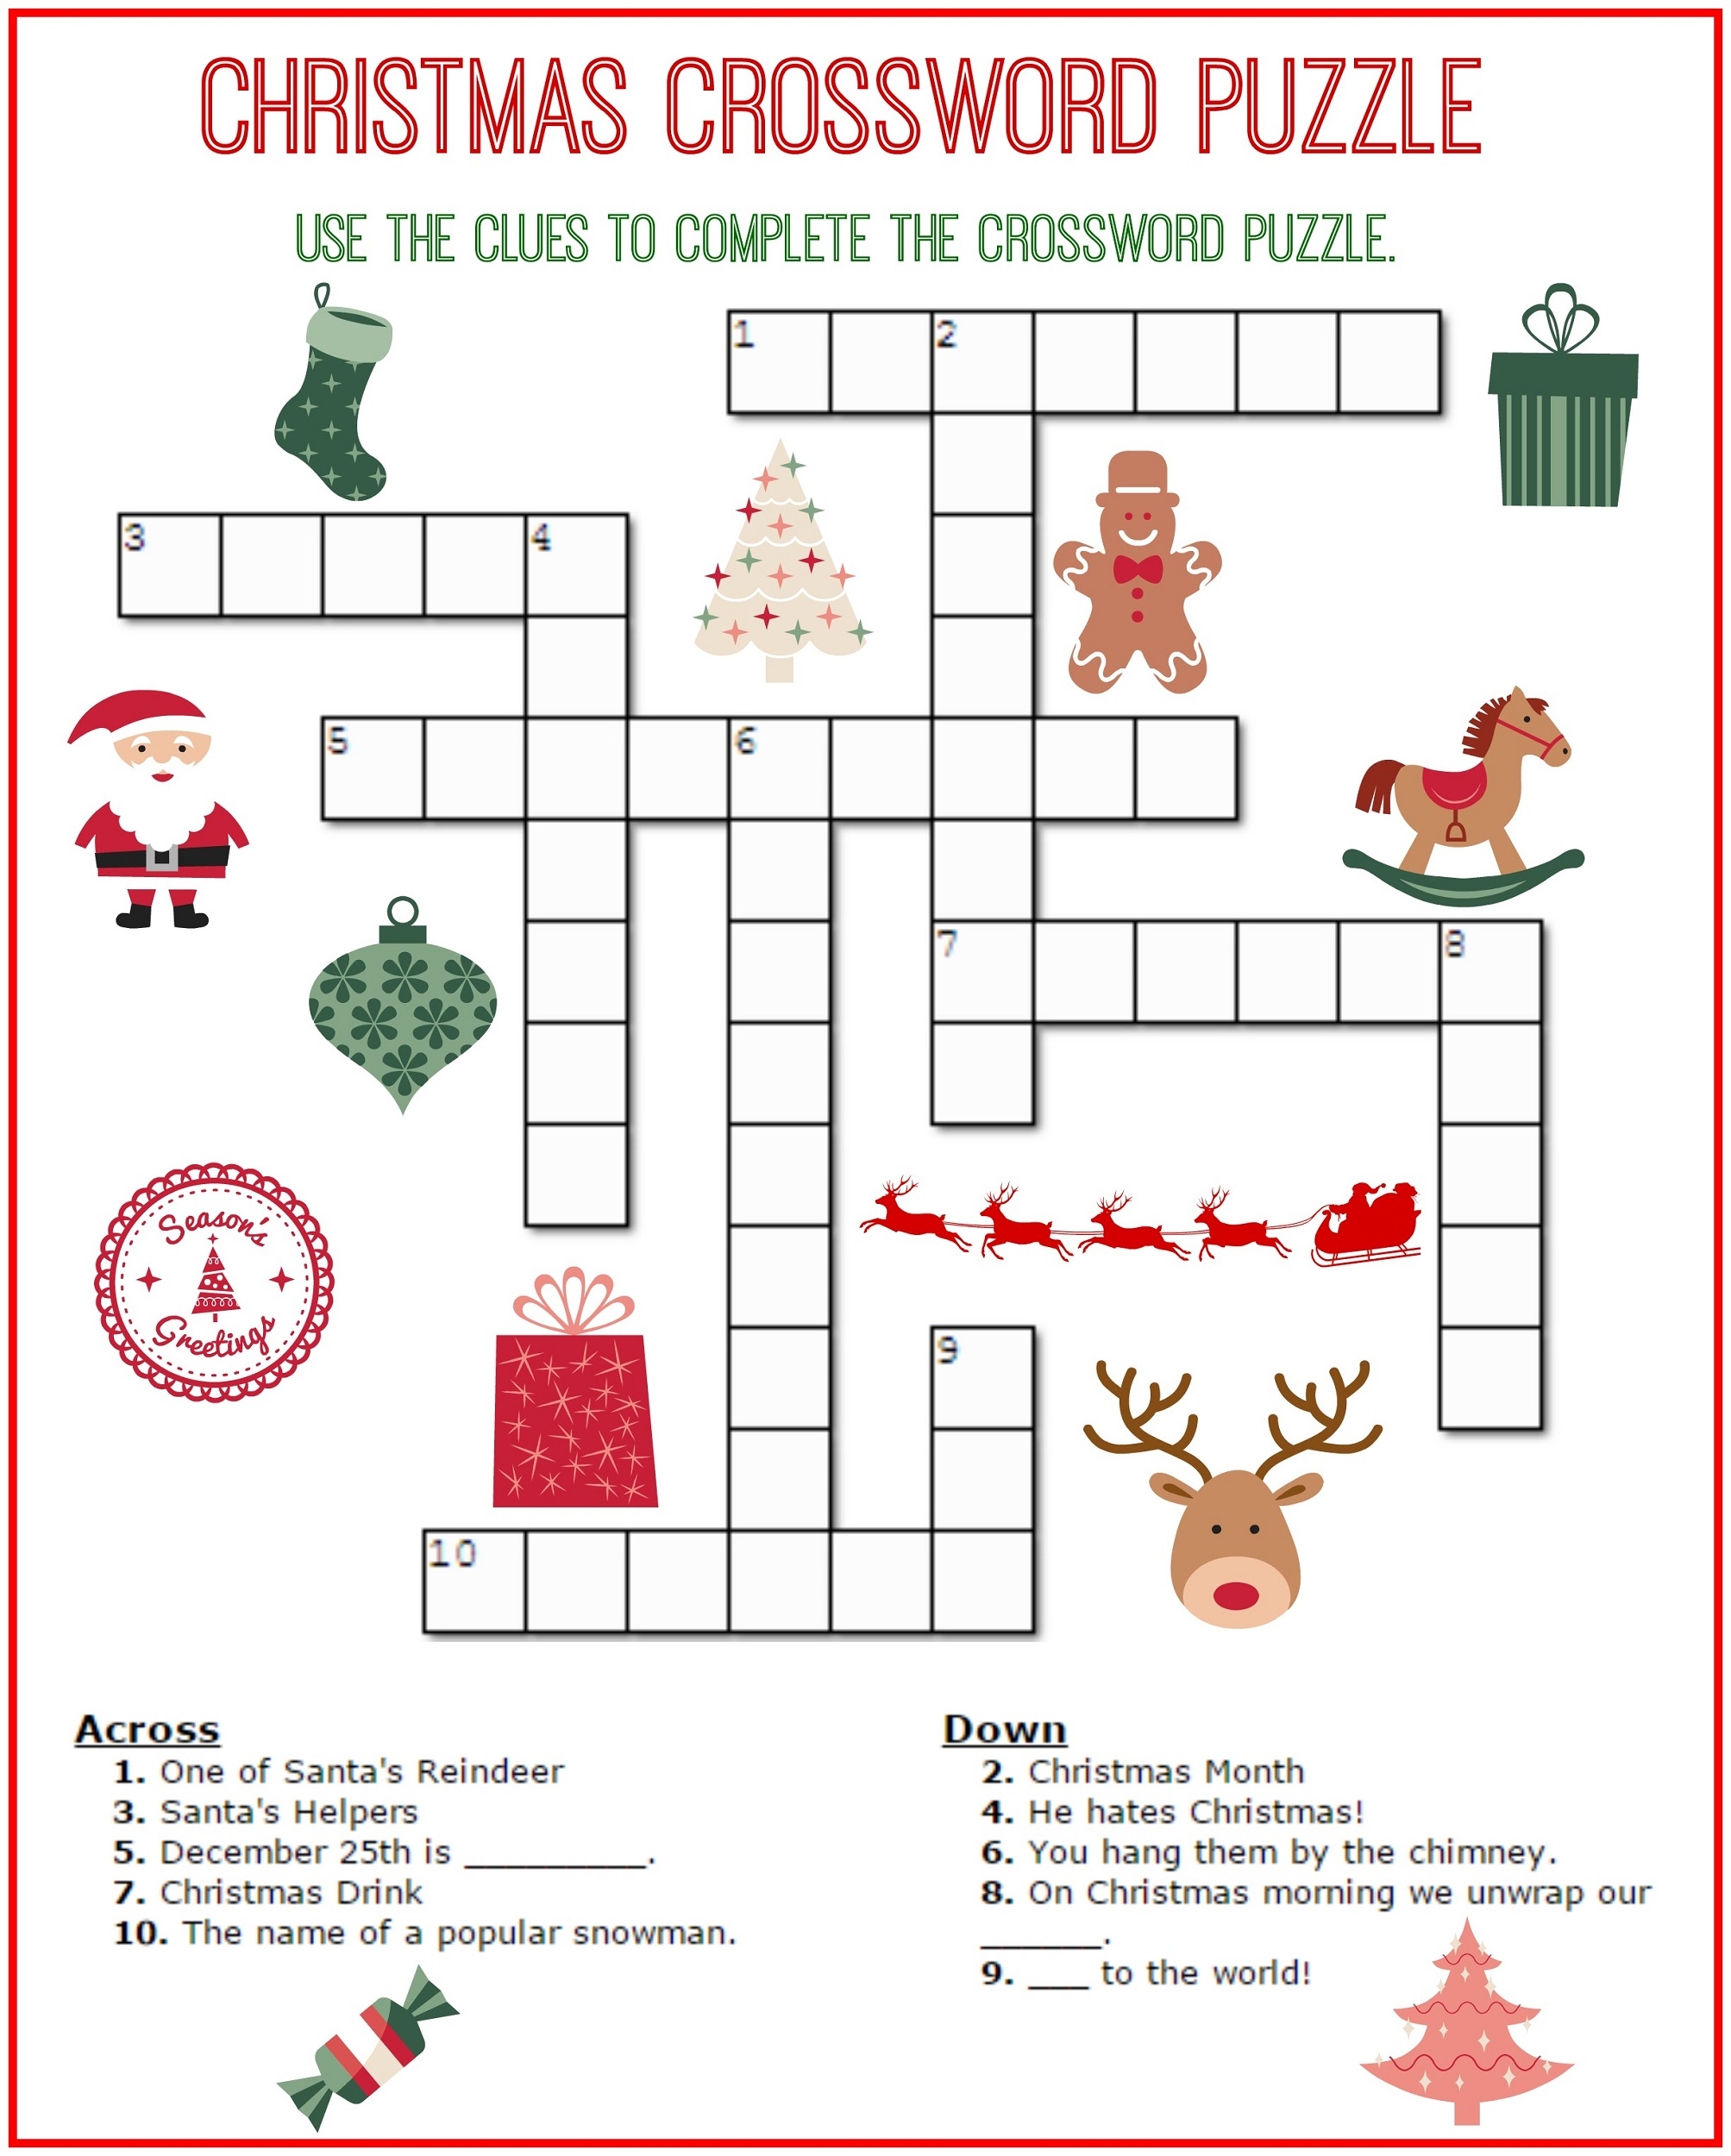 Childrens Crossword Puzzles Printable Crossword Puzzle Kids - Printable Junior Crossword Puzzles